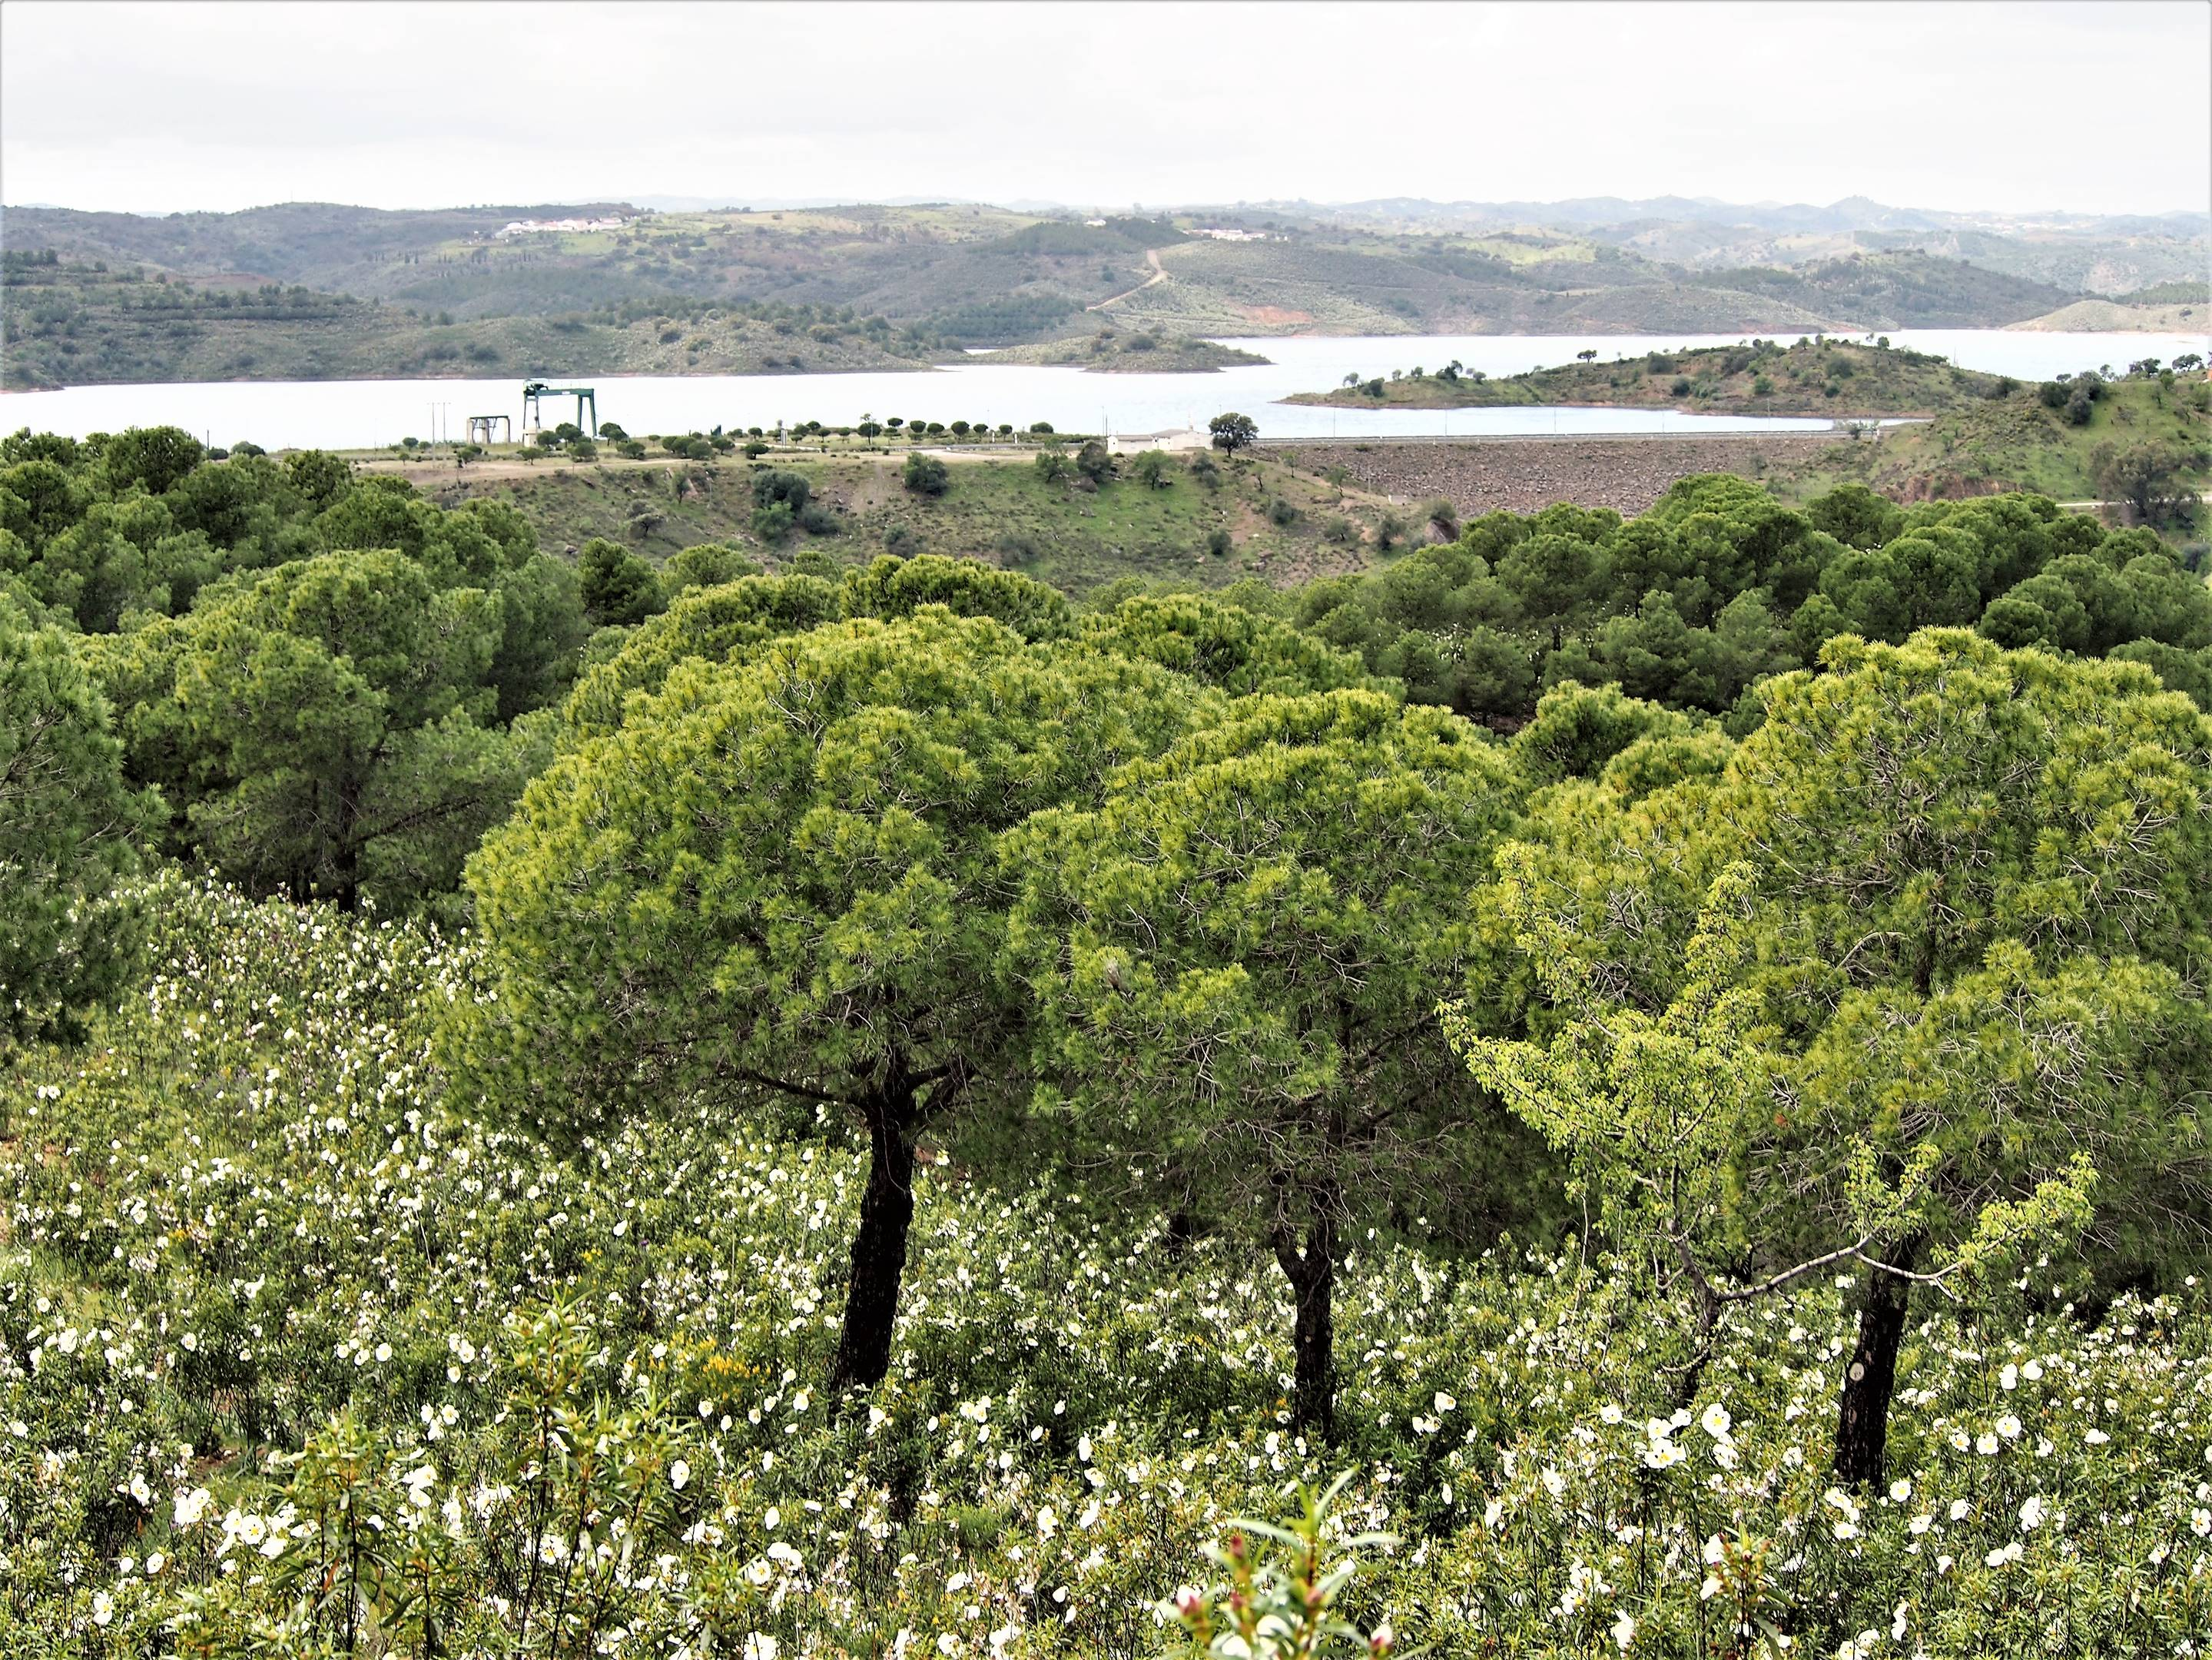 The Odeleite Dam, Castro Marim - at the time of the picture it is Spring and it has been raining for many weeks. The dam is almost full and the plants are in bloom